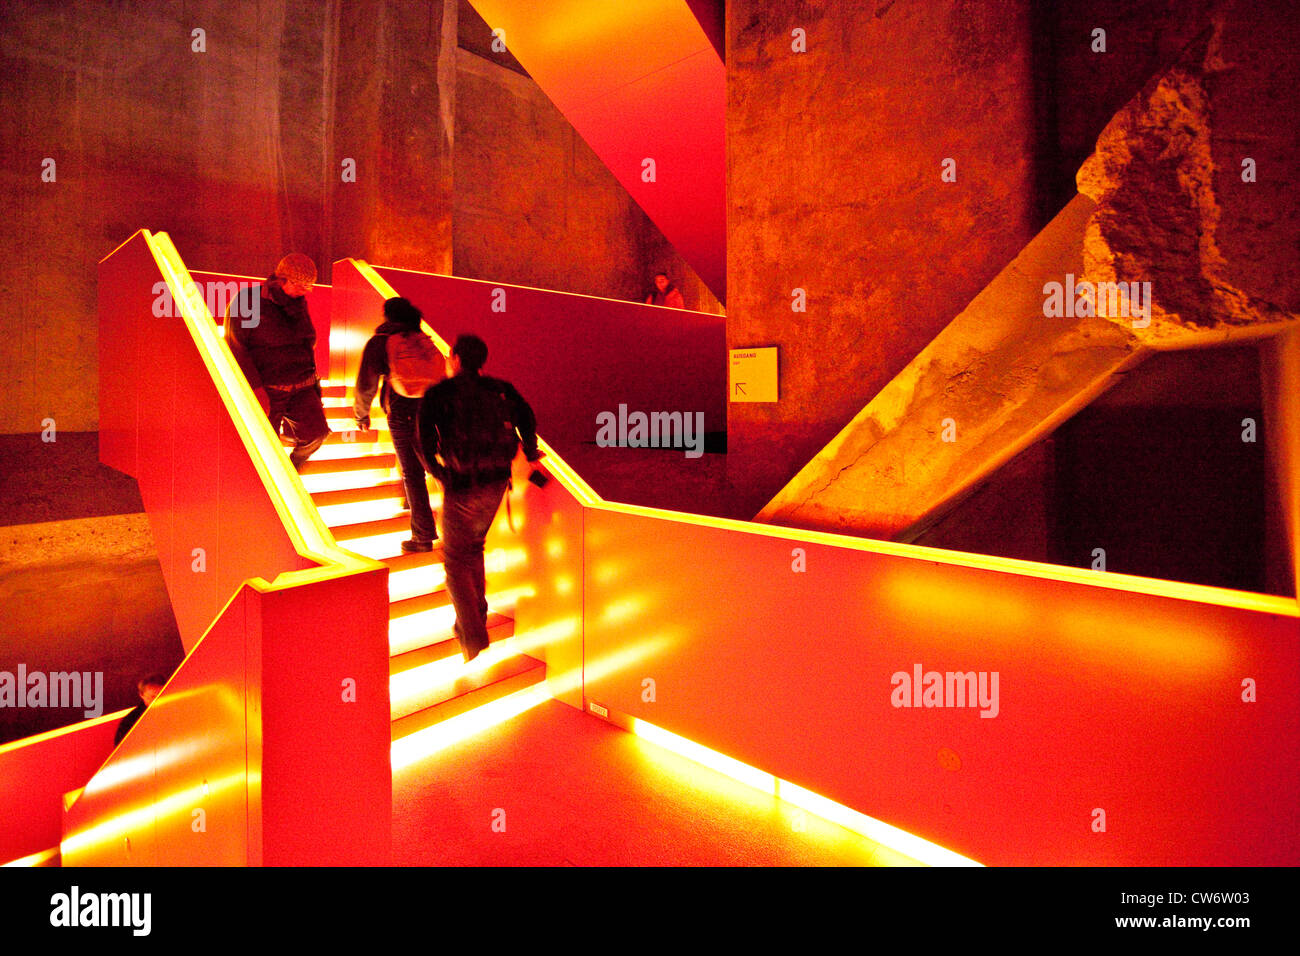 people in a staircase of coal plant Zollverein, Germany, North Rhine-Westphalia, Ruhr Area, Essen - Stock Image